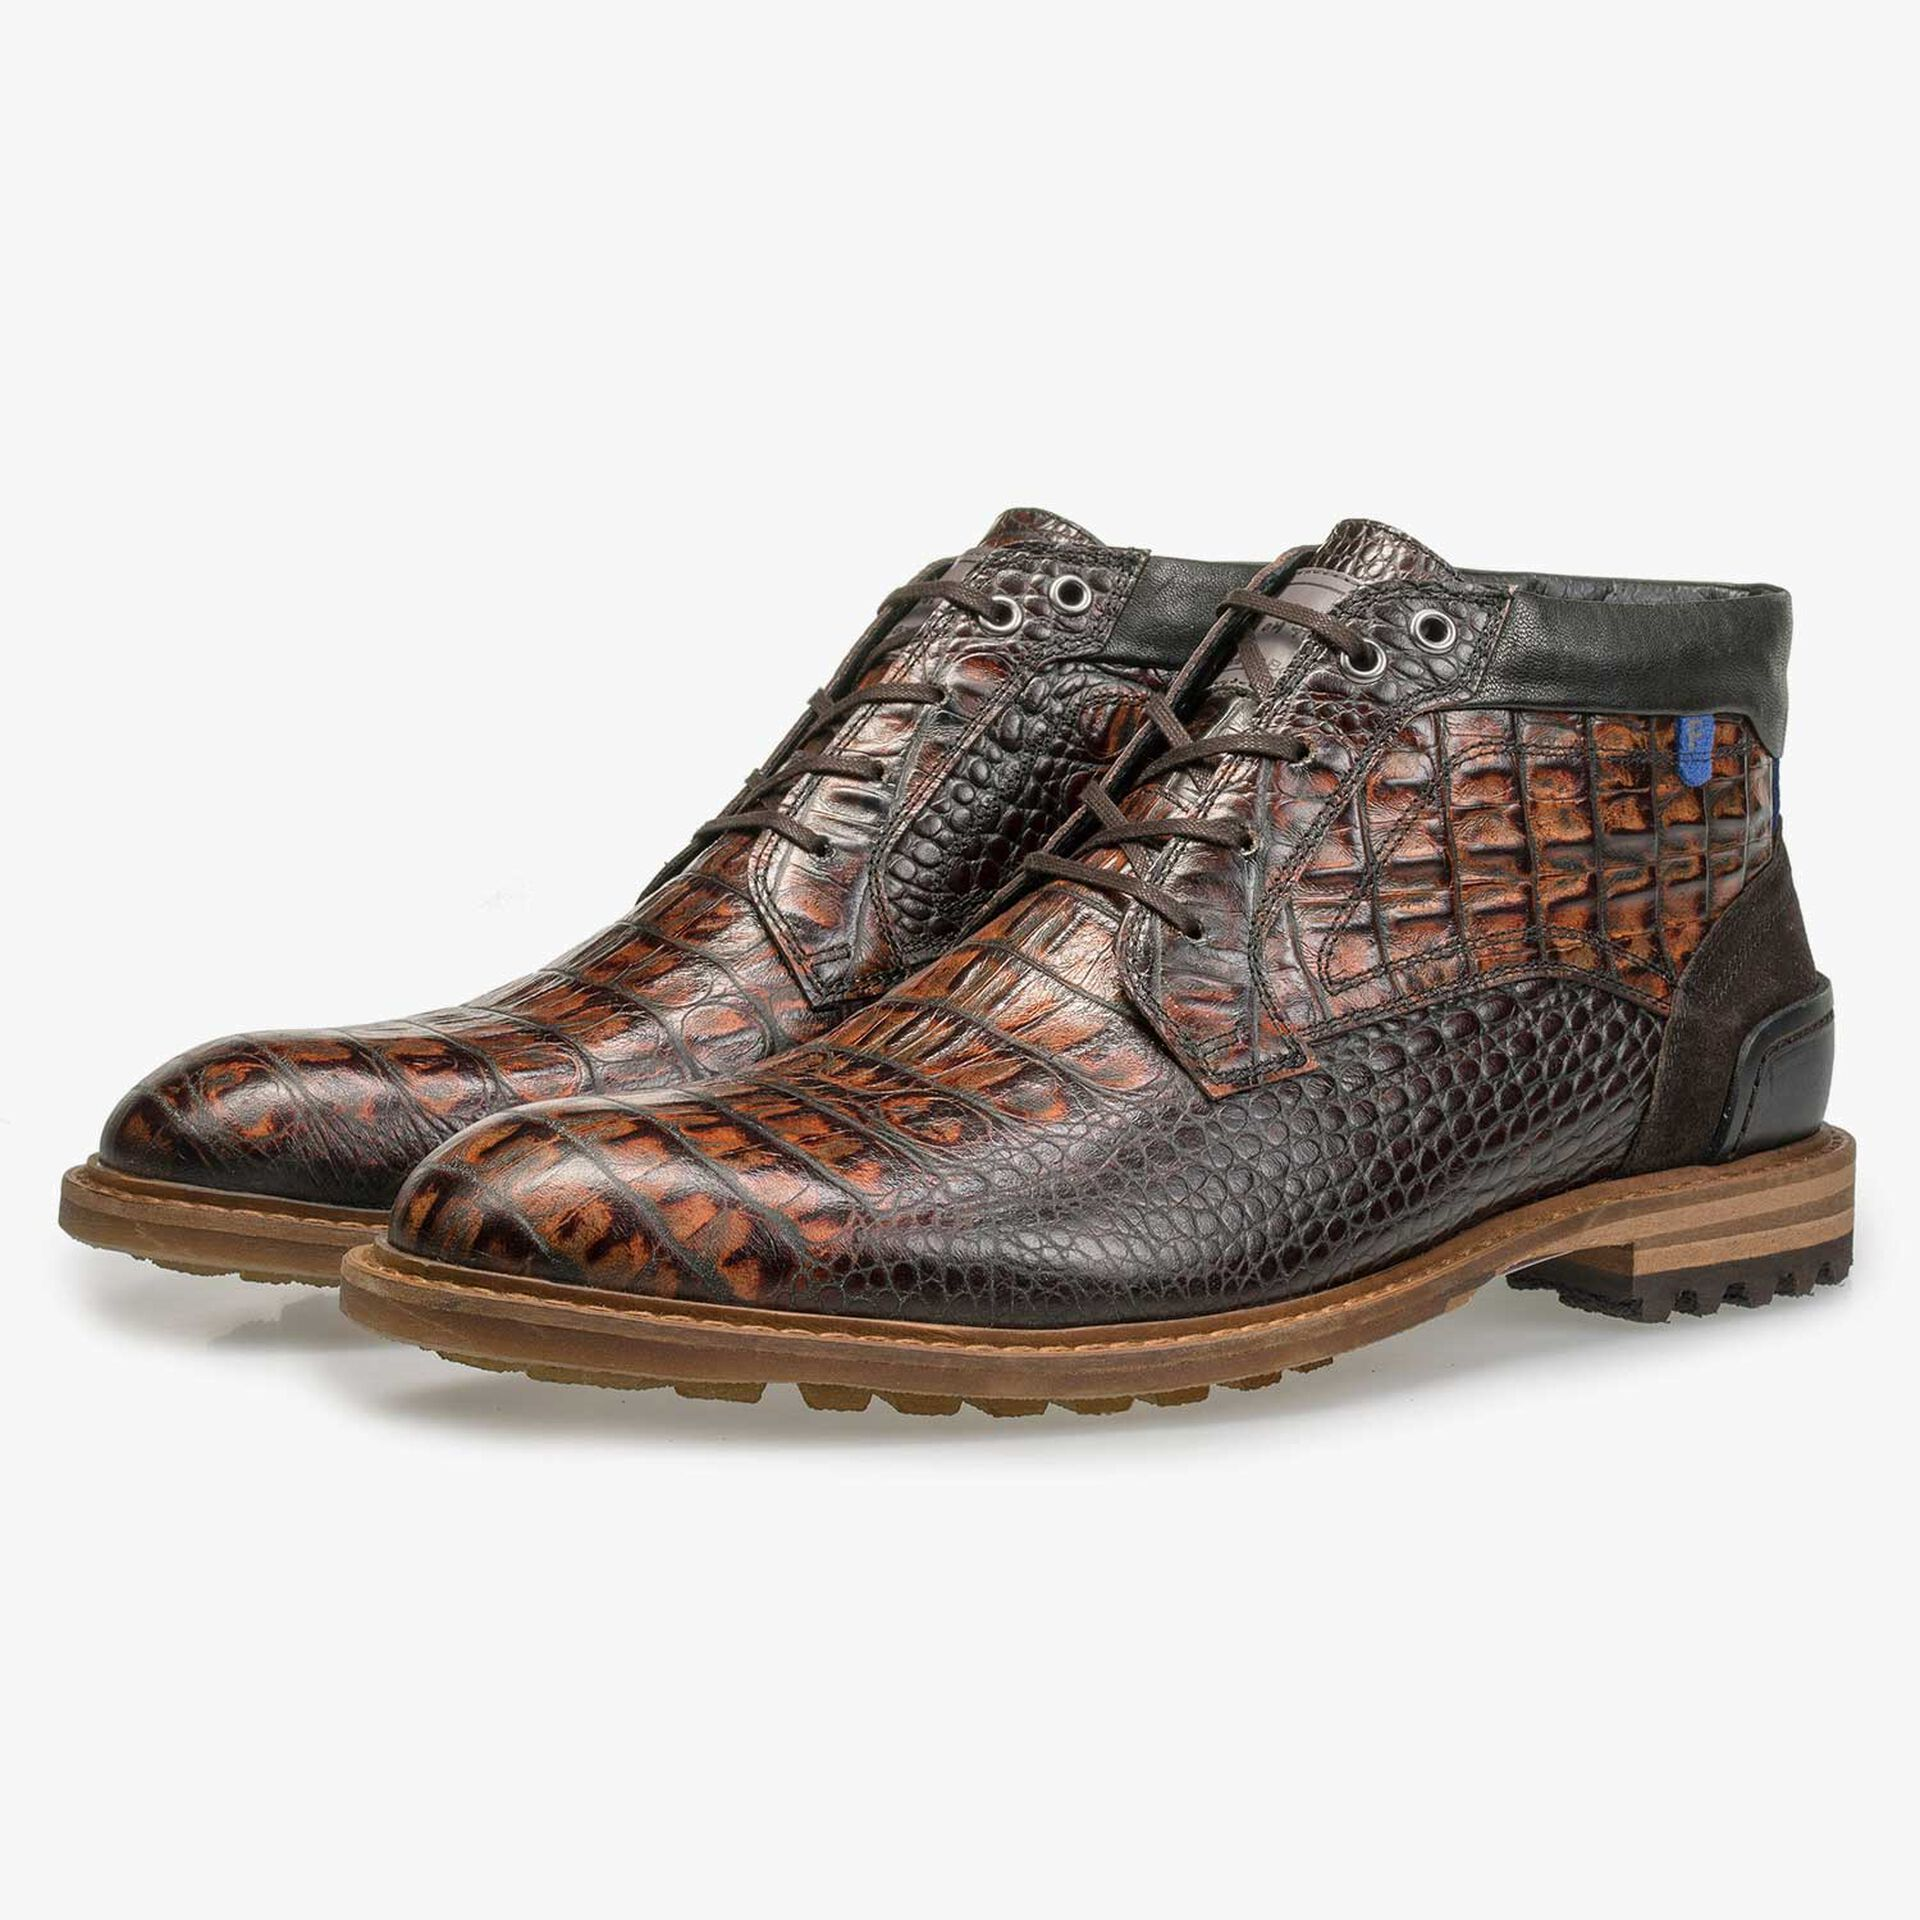 Mid-high brown leather lace boot with croco print